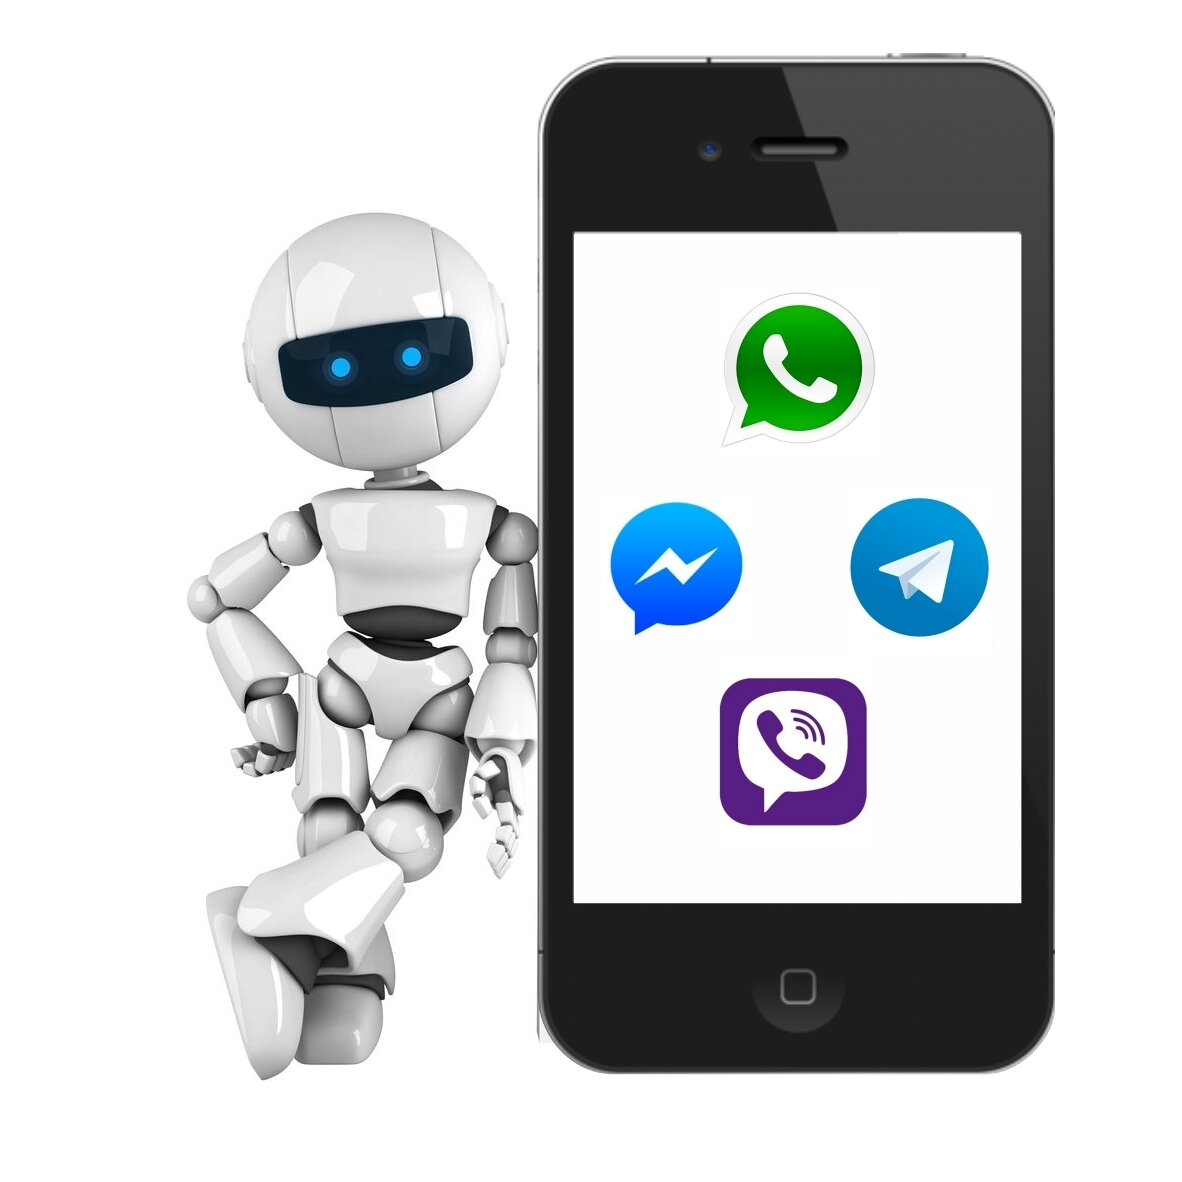 Whats the best sex chatbot